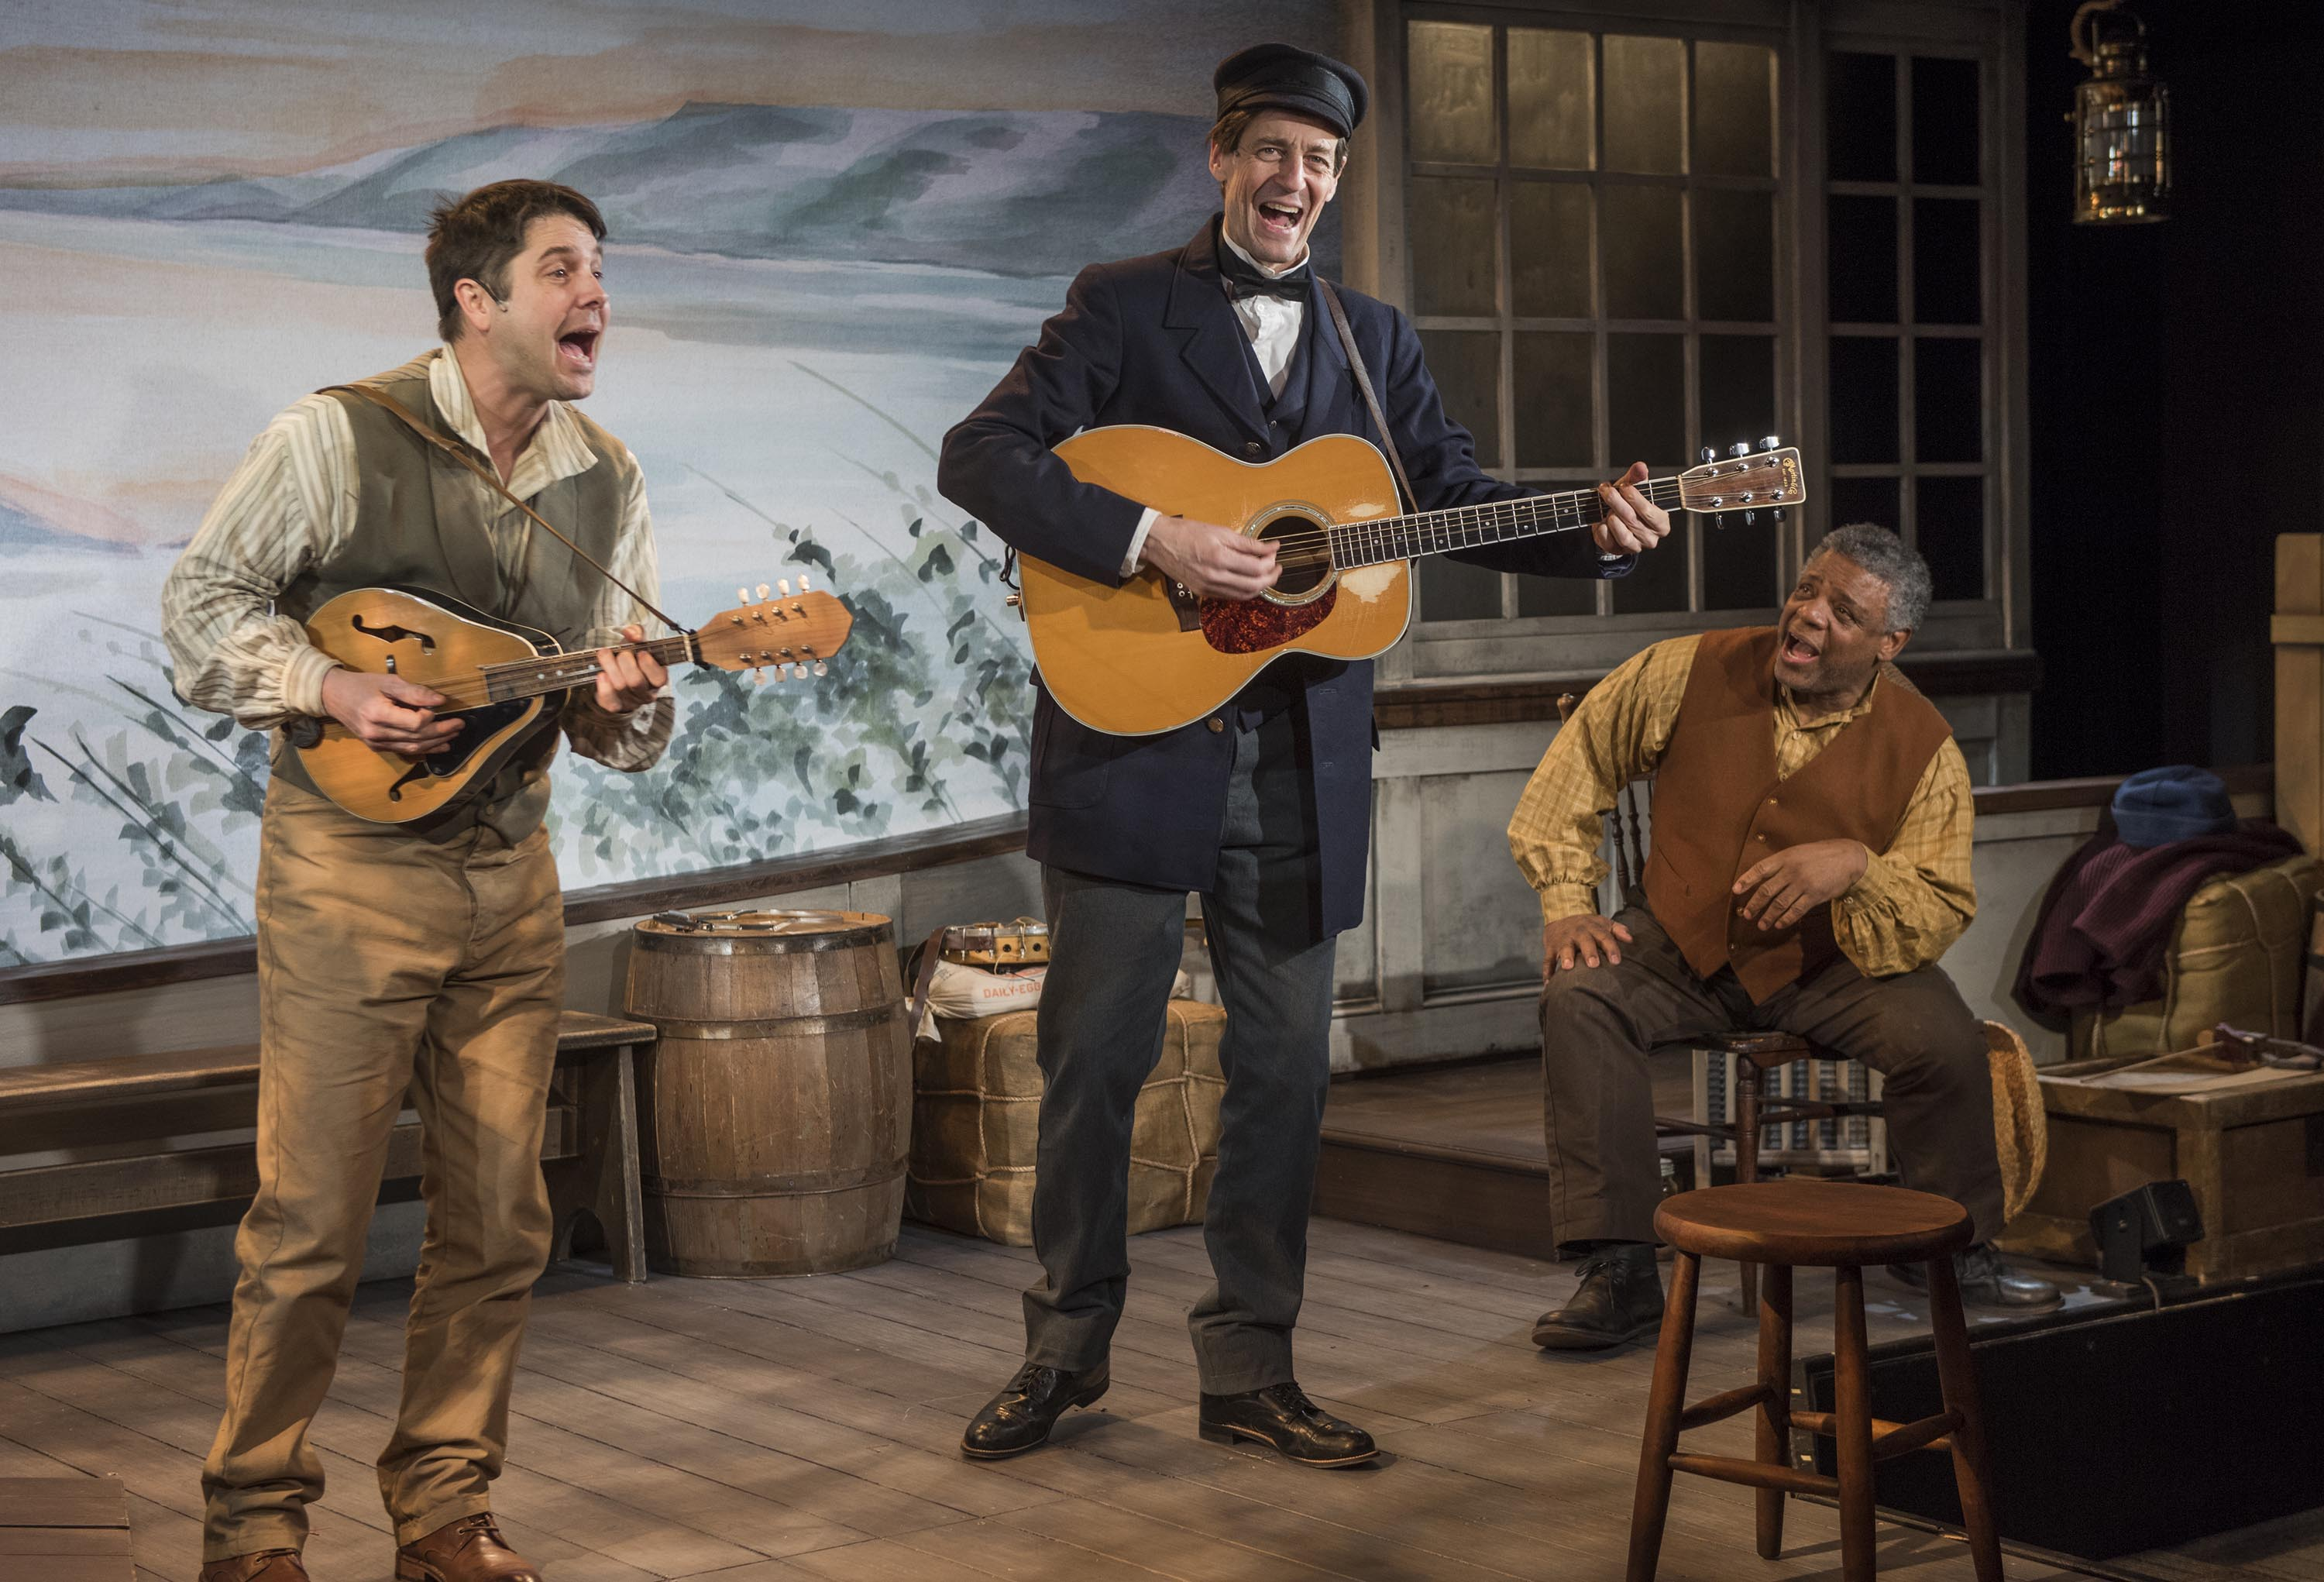 Milwaukee Repertory Theater presents Mark Twain's River of Song in the Stacker Cabaret from January 18 – March 17, 2019. L to R: Spiff Weigand, David Lutken, Harvy Blanks. Photo by Michael Brosilow.